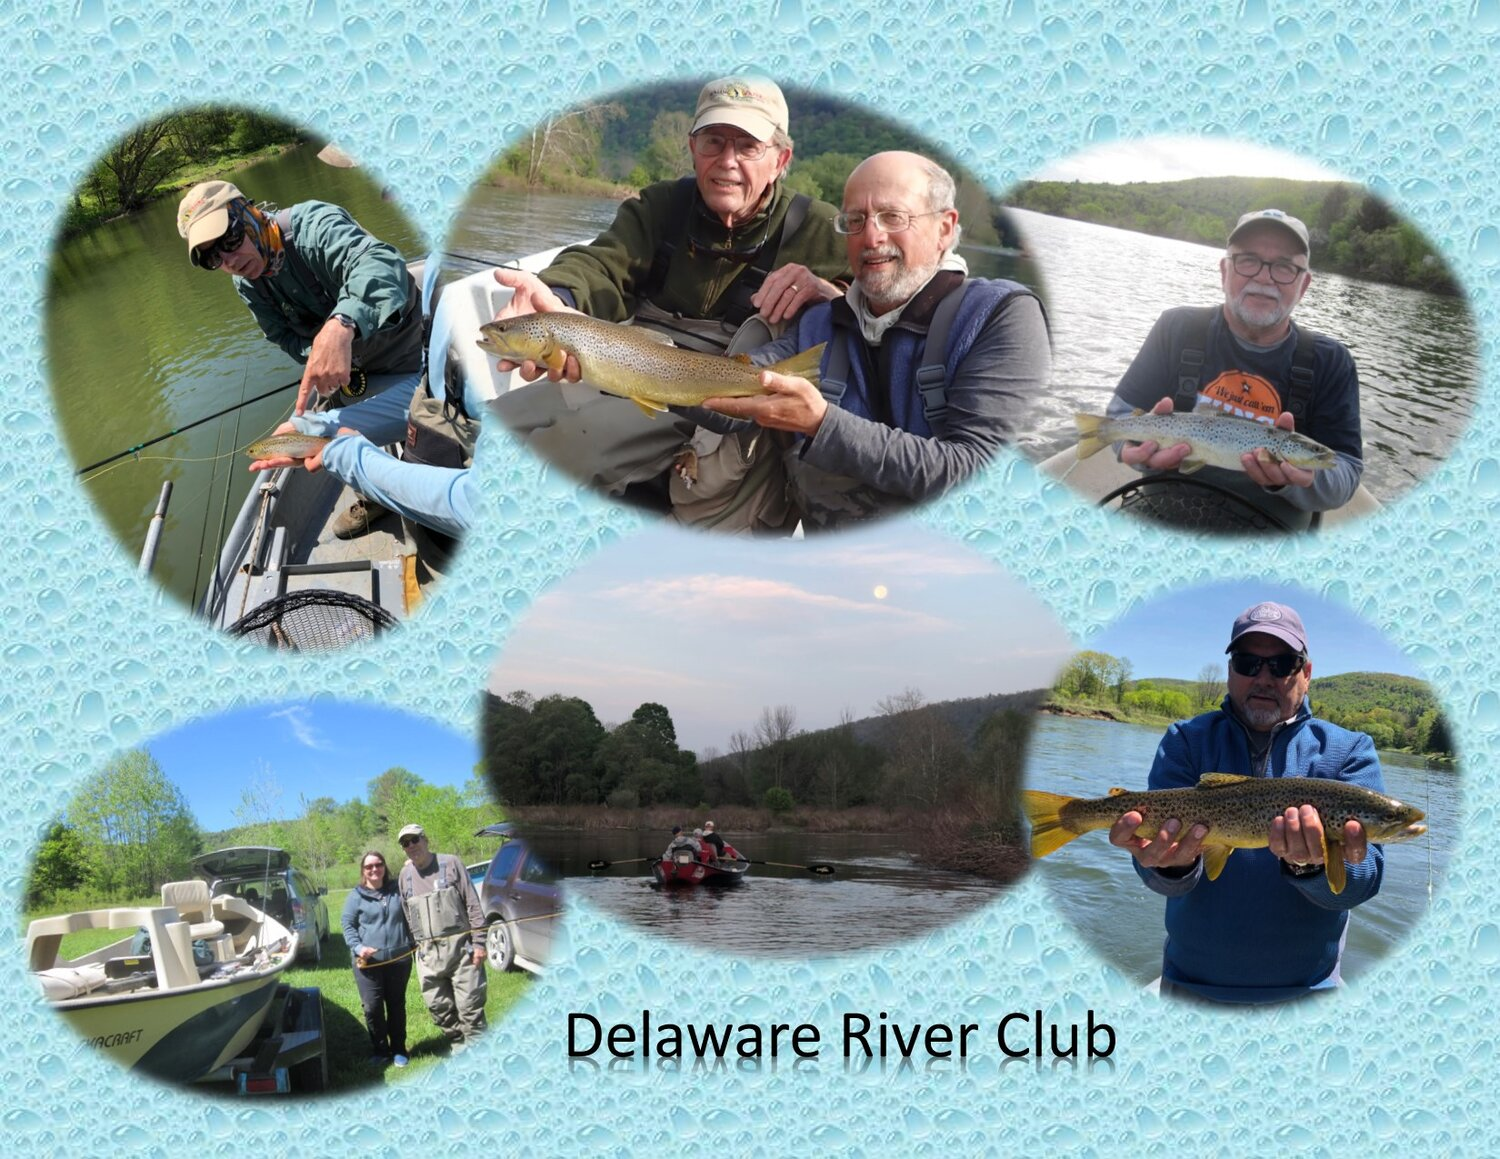 Collage from 2019's Delaware River Club trip